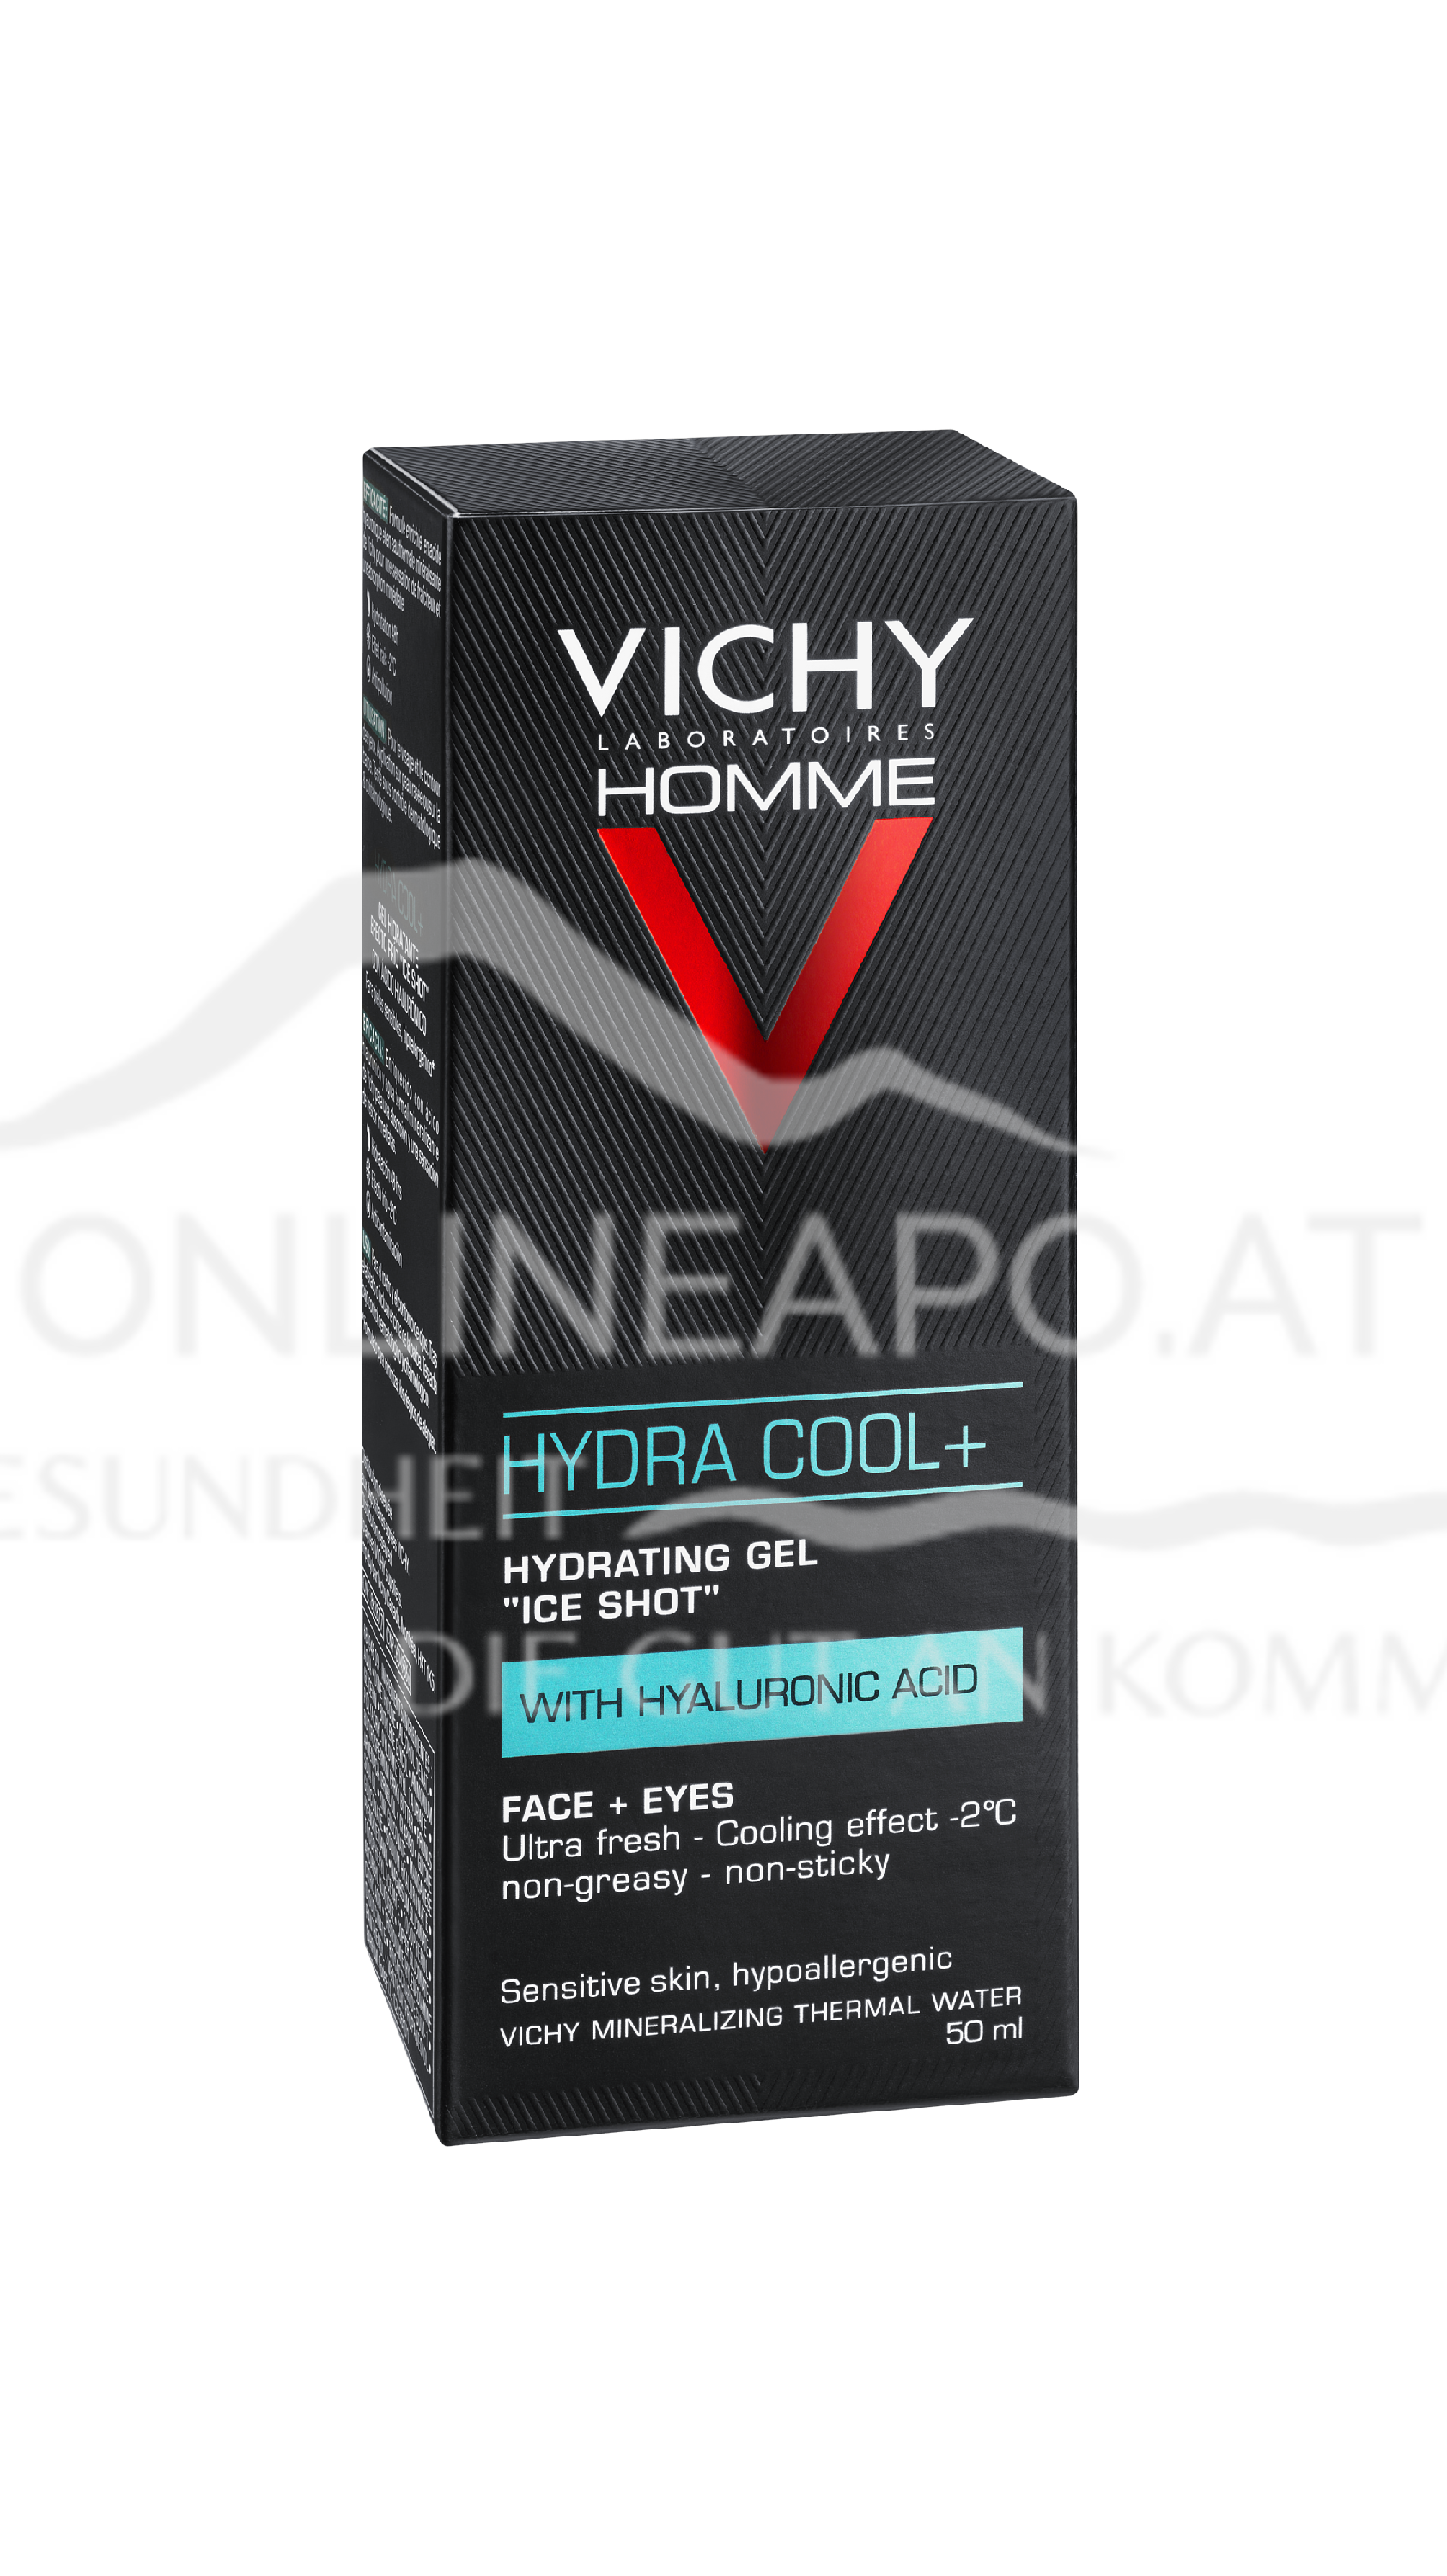 VICHY Homme Hydra Cool+